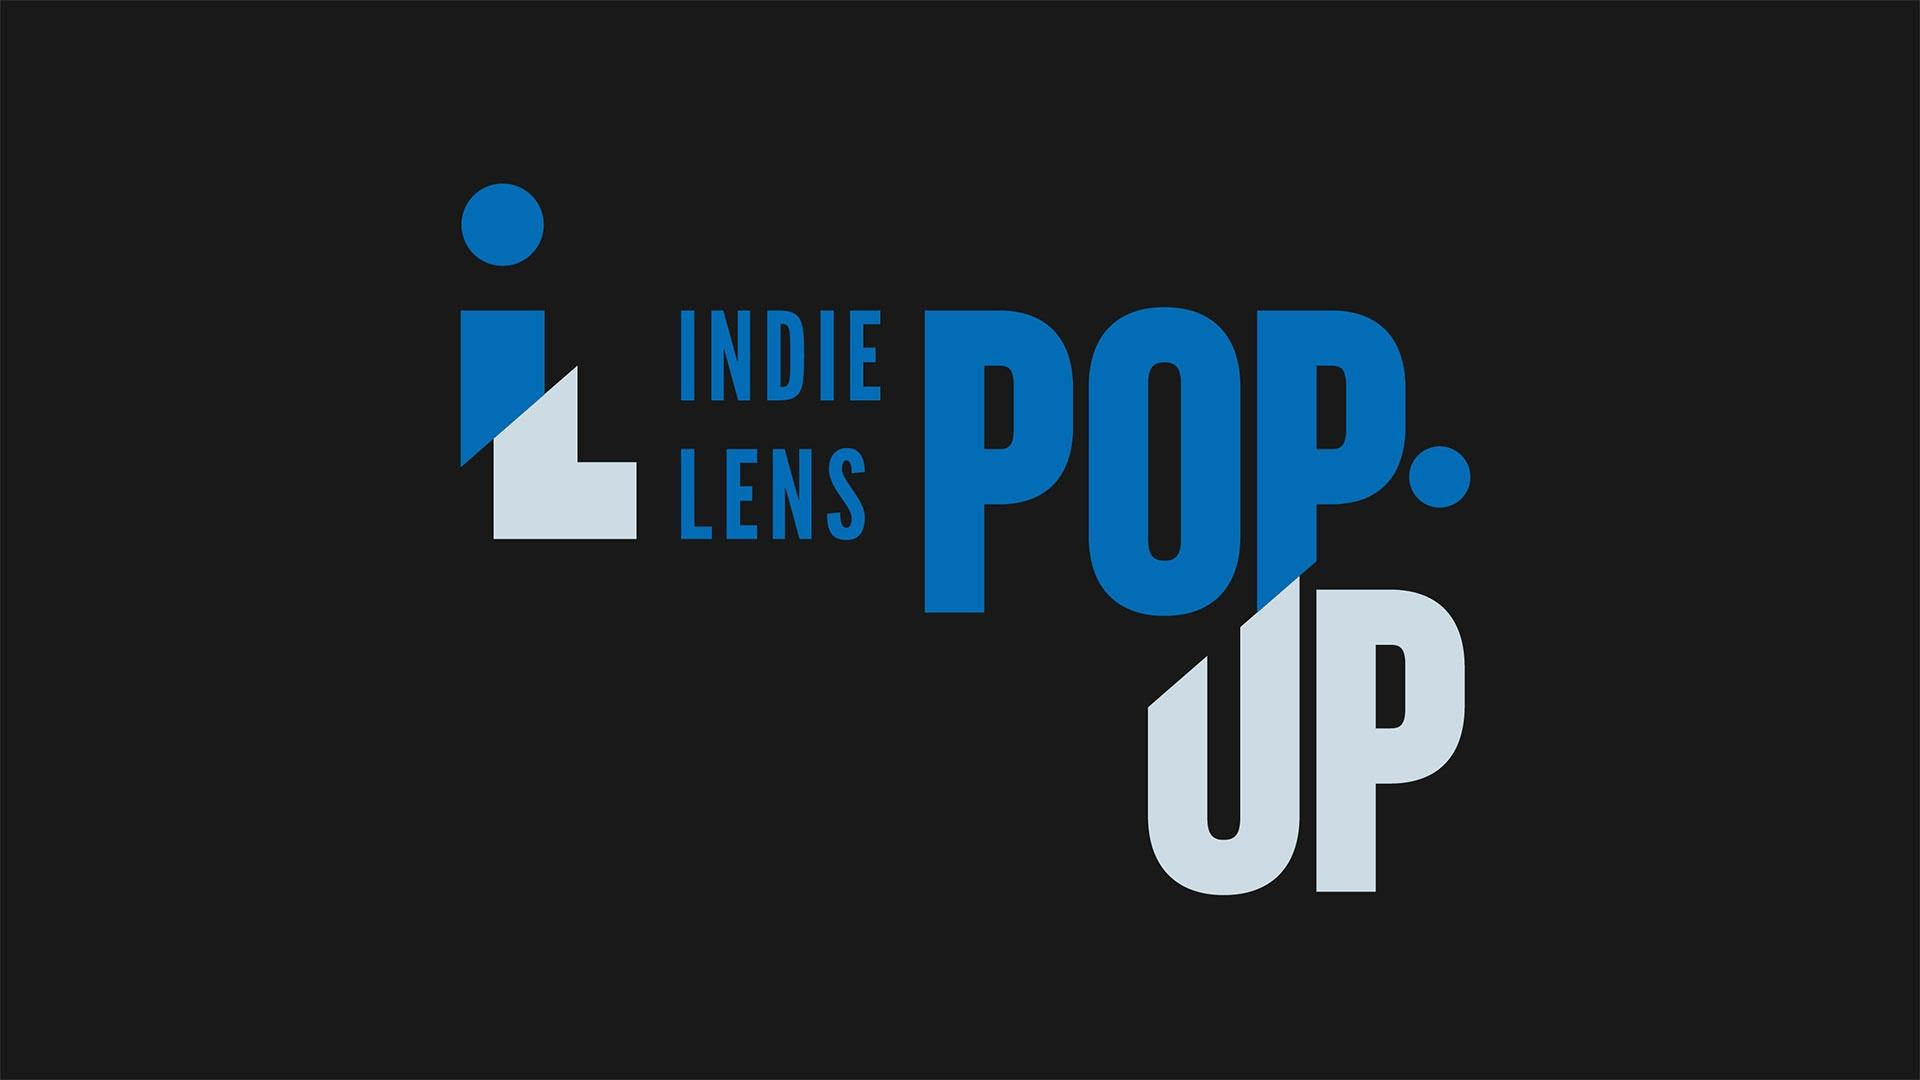 Indie Lens Pop Up logo in blue and gray sans-serif type.